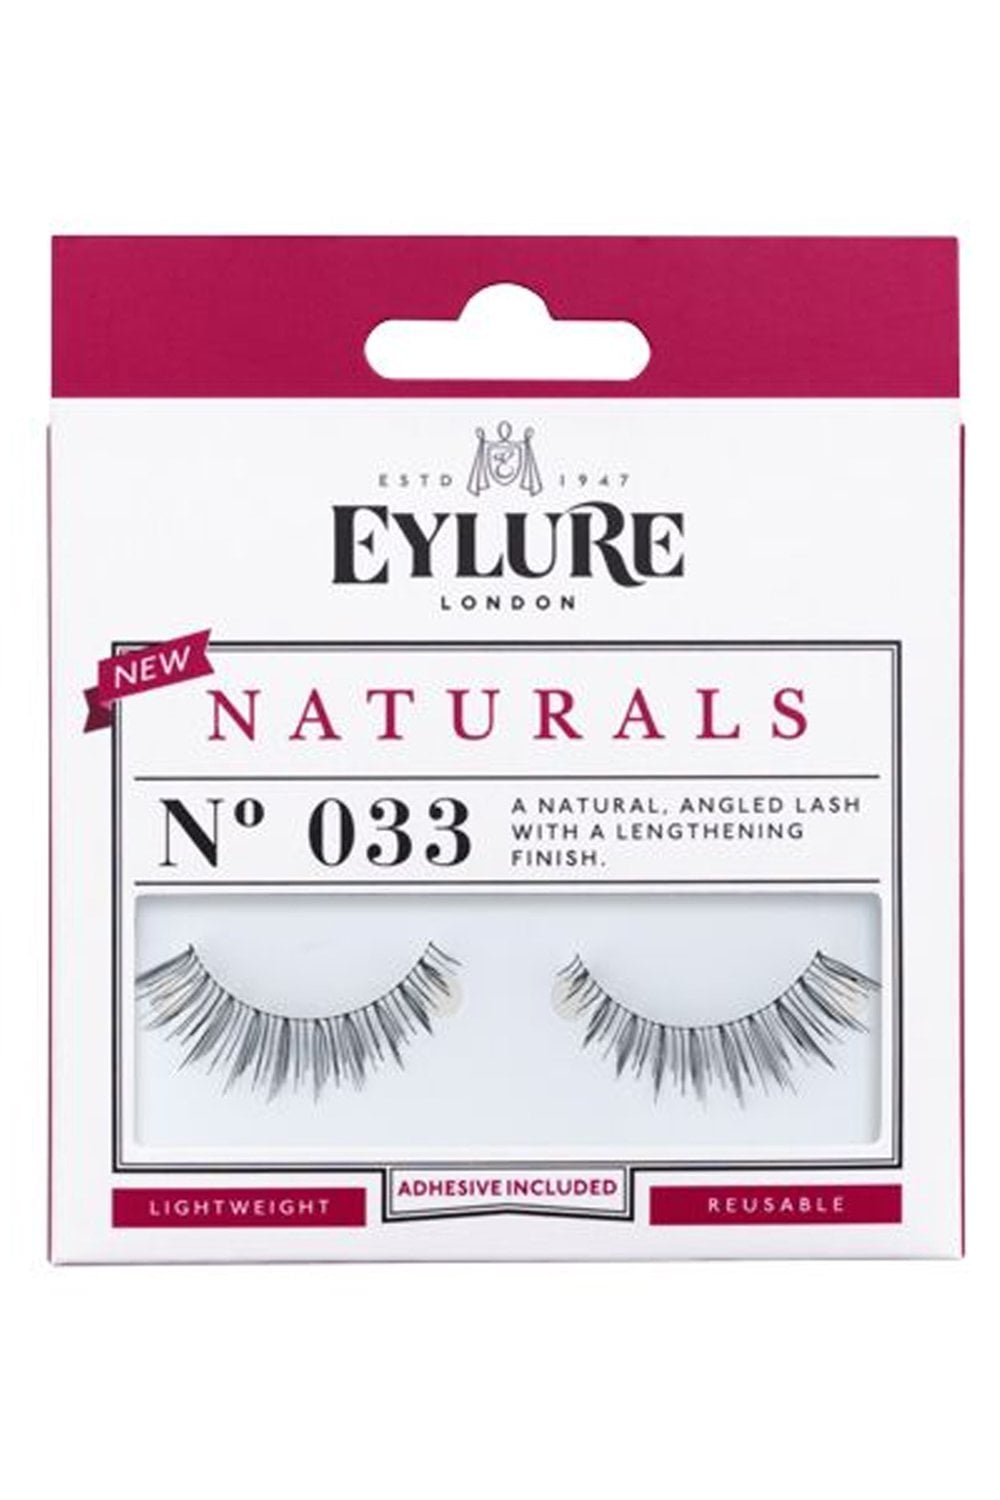 0a5b5df17b4 Eylure Eylure Naturals No. 033 Lashes - Eylure from Little Mistress UK